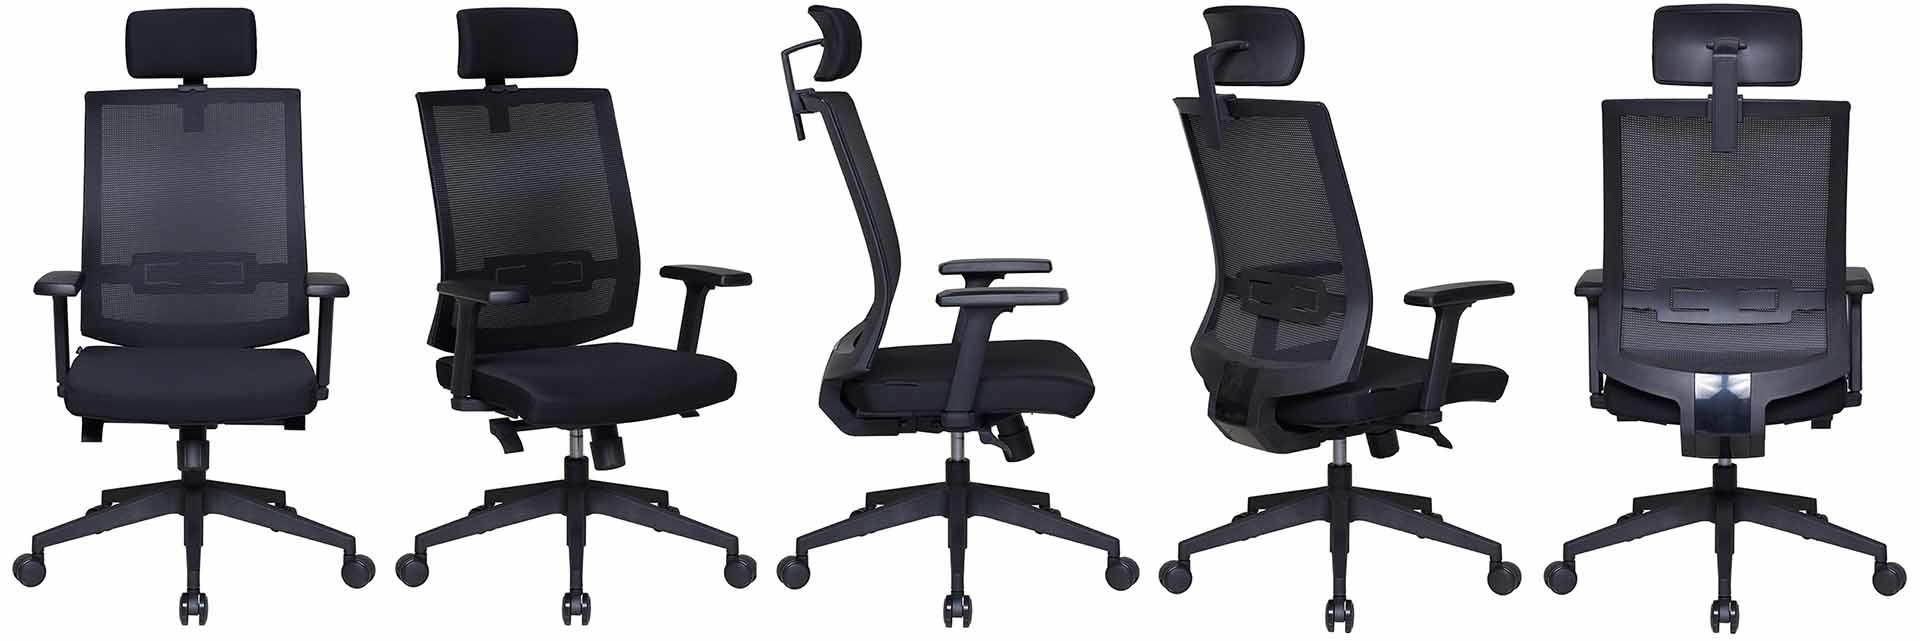 Tevson leather ergonomic leather office chair solutions for reception-1